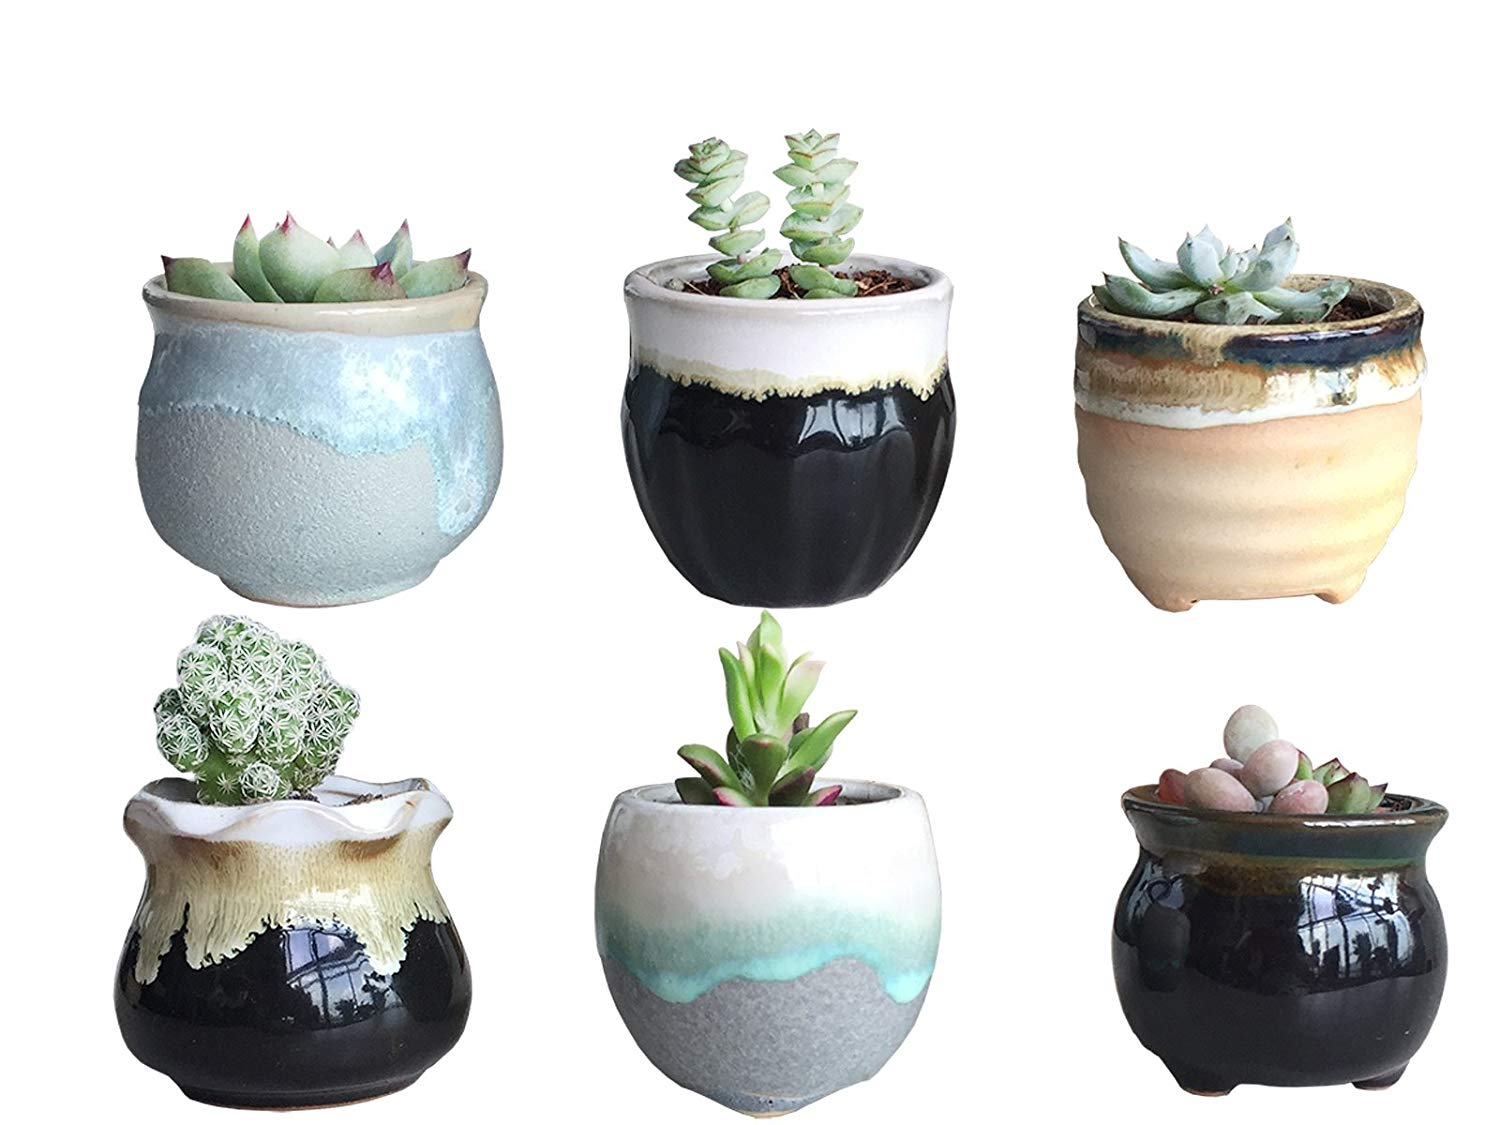 Cactus Planting Pots Cheap 9 Inch Plant Pots Find 9 Inch Plant Pots Deals On Line At